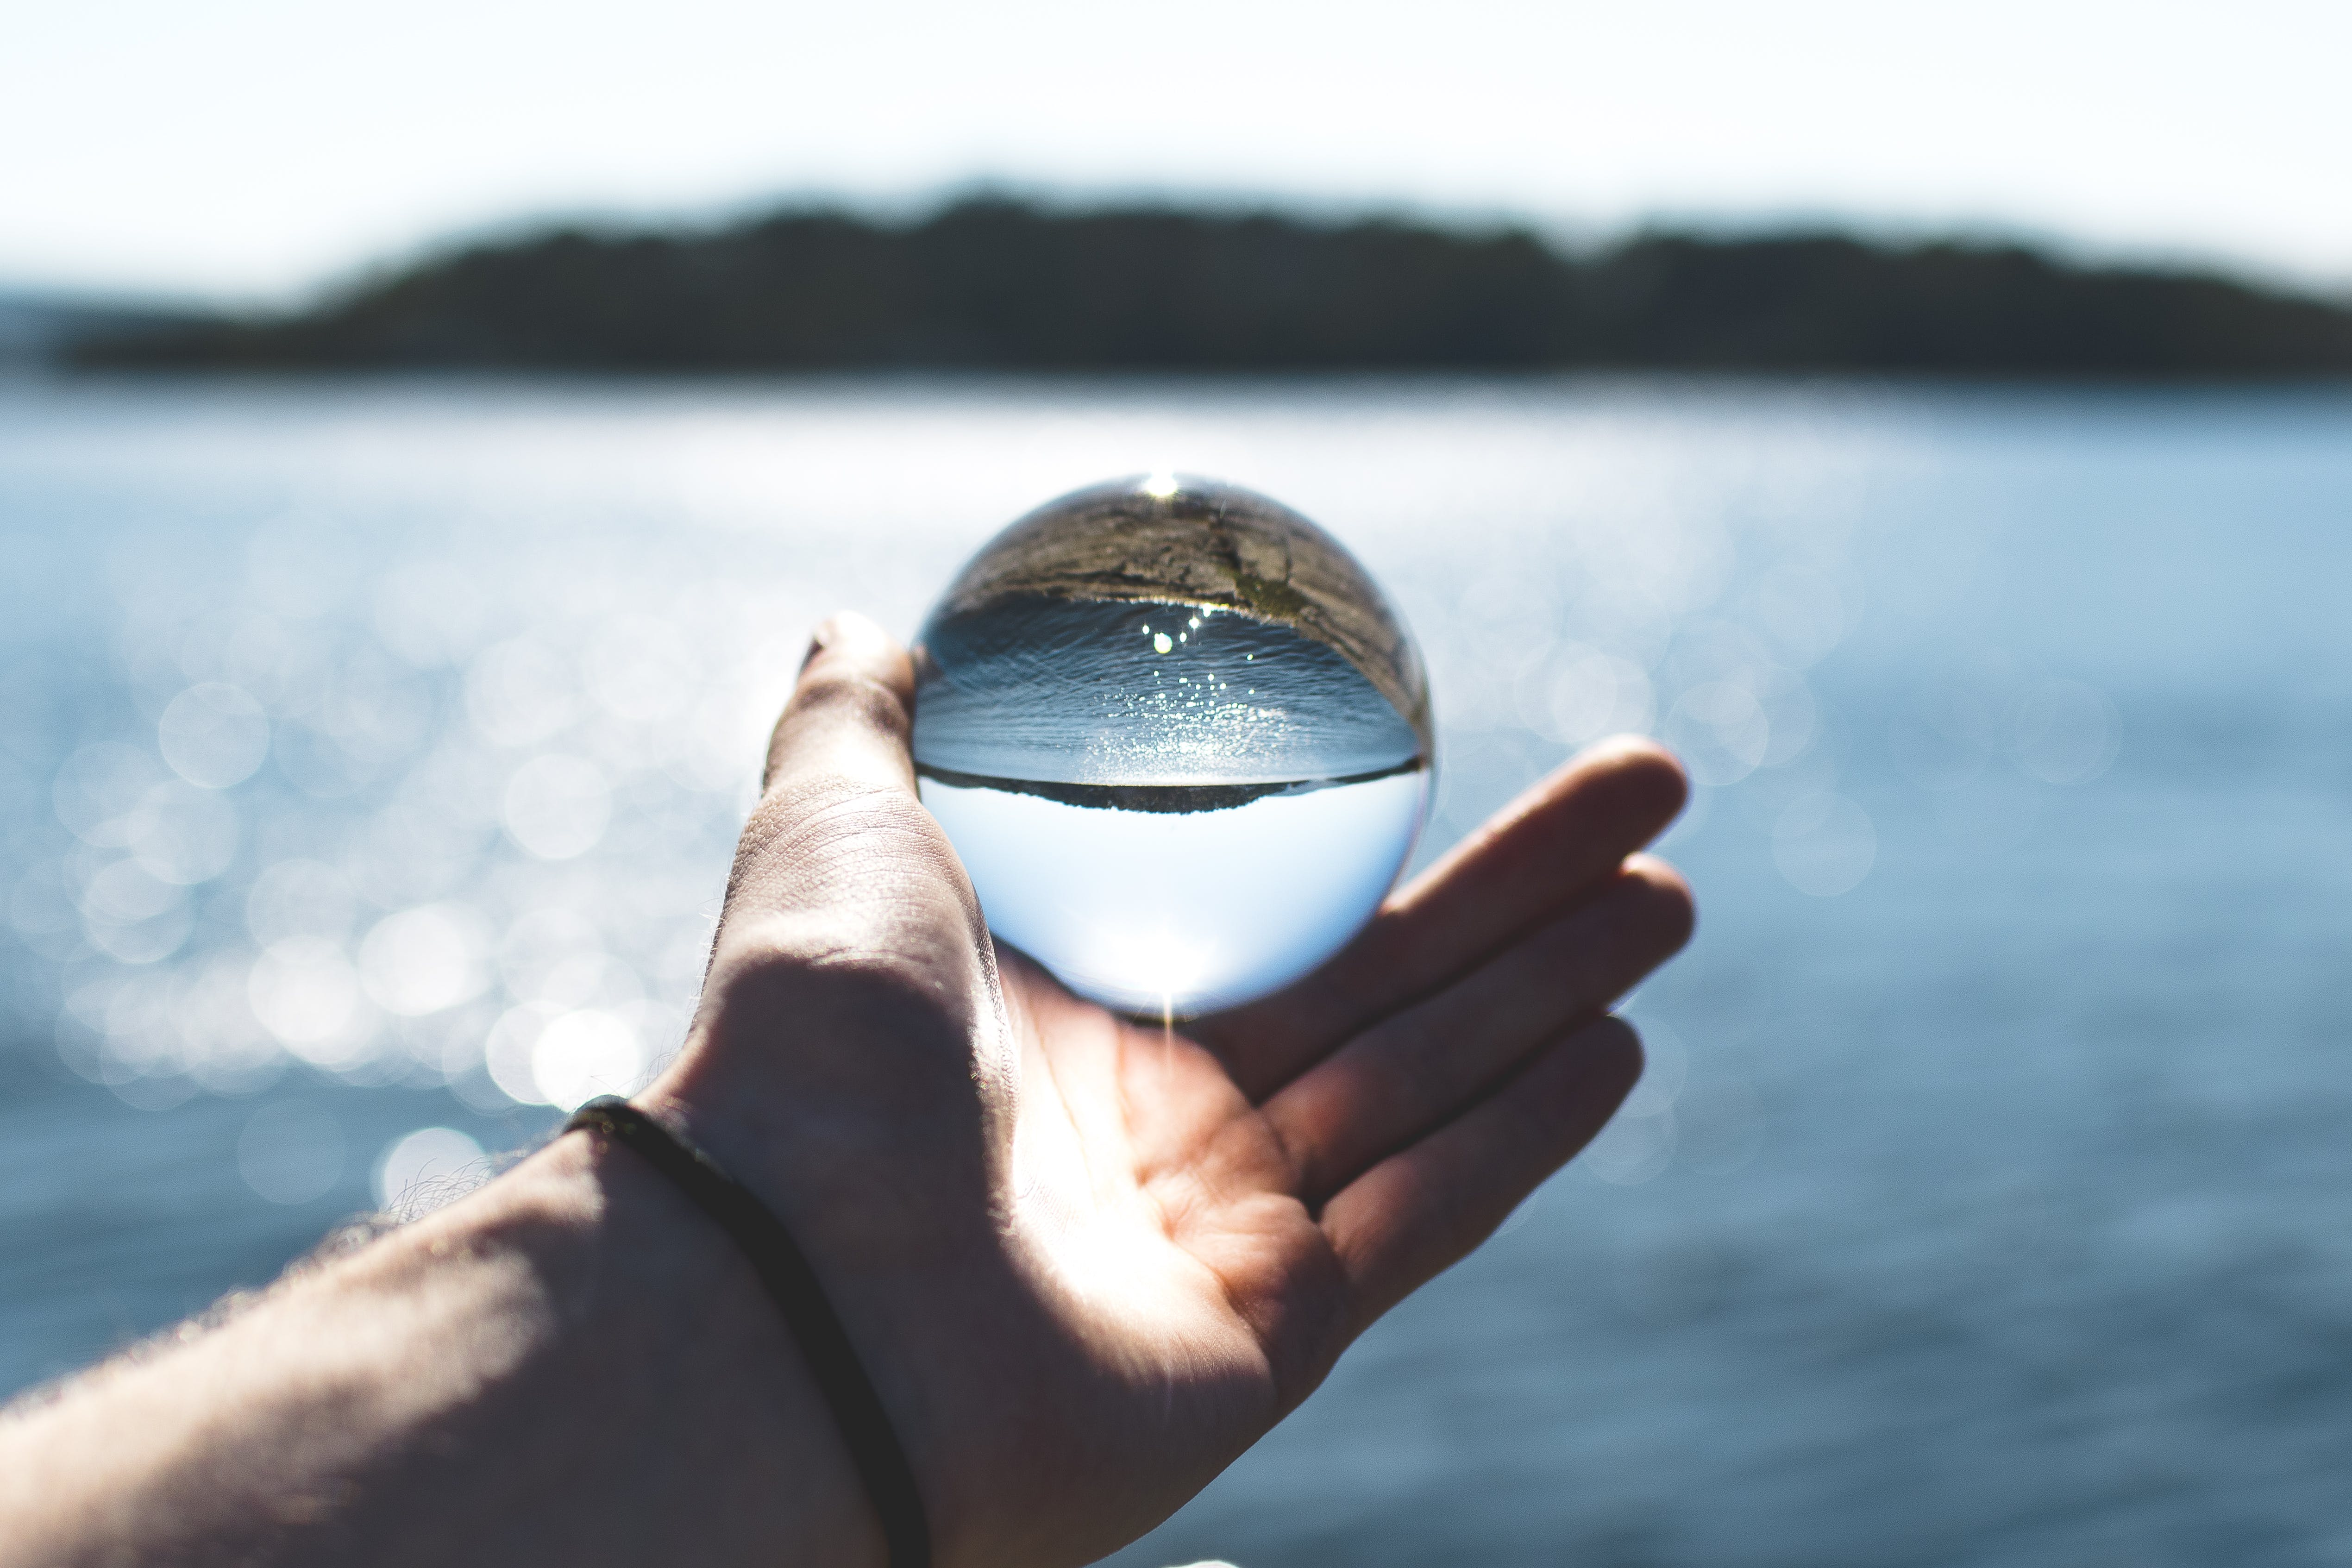 Bokeh Photography of Person Holding Water Drop